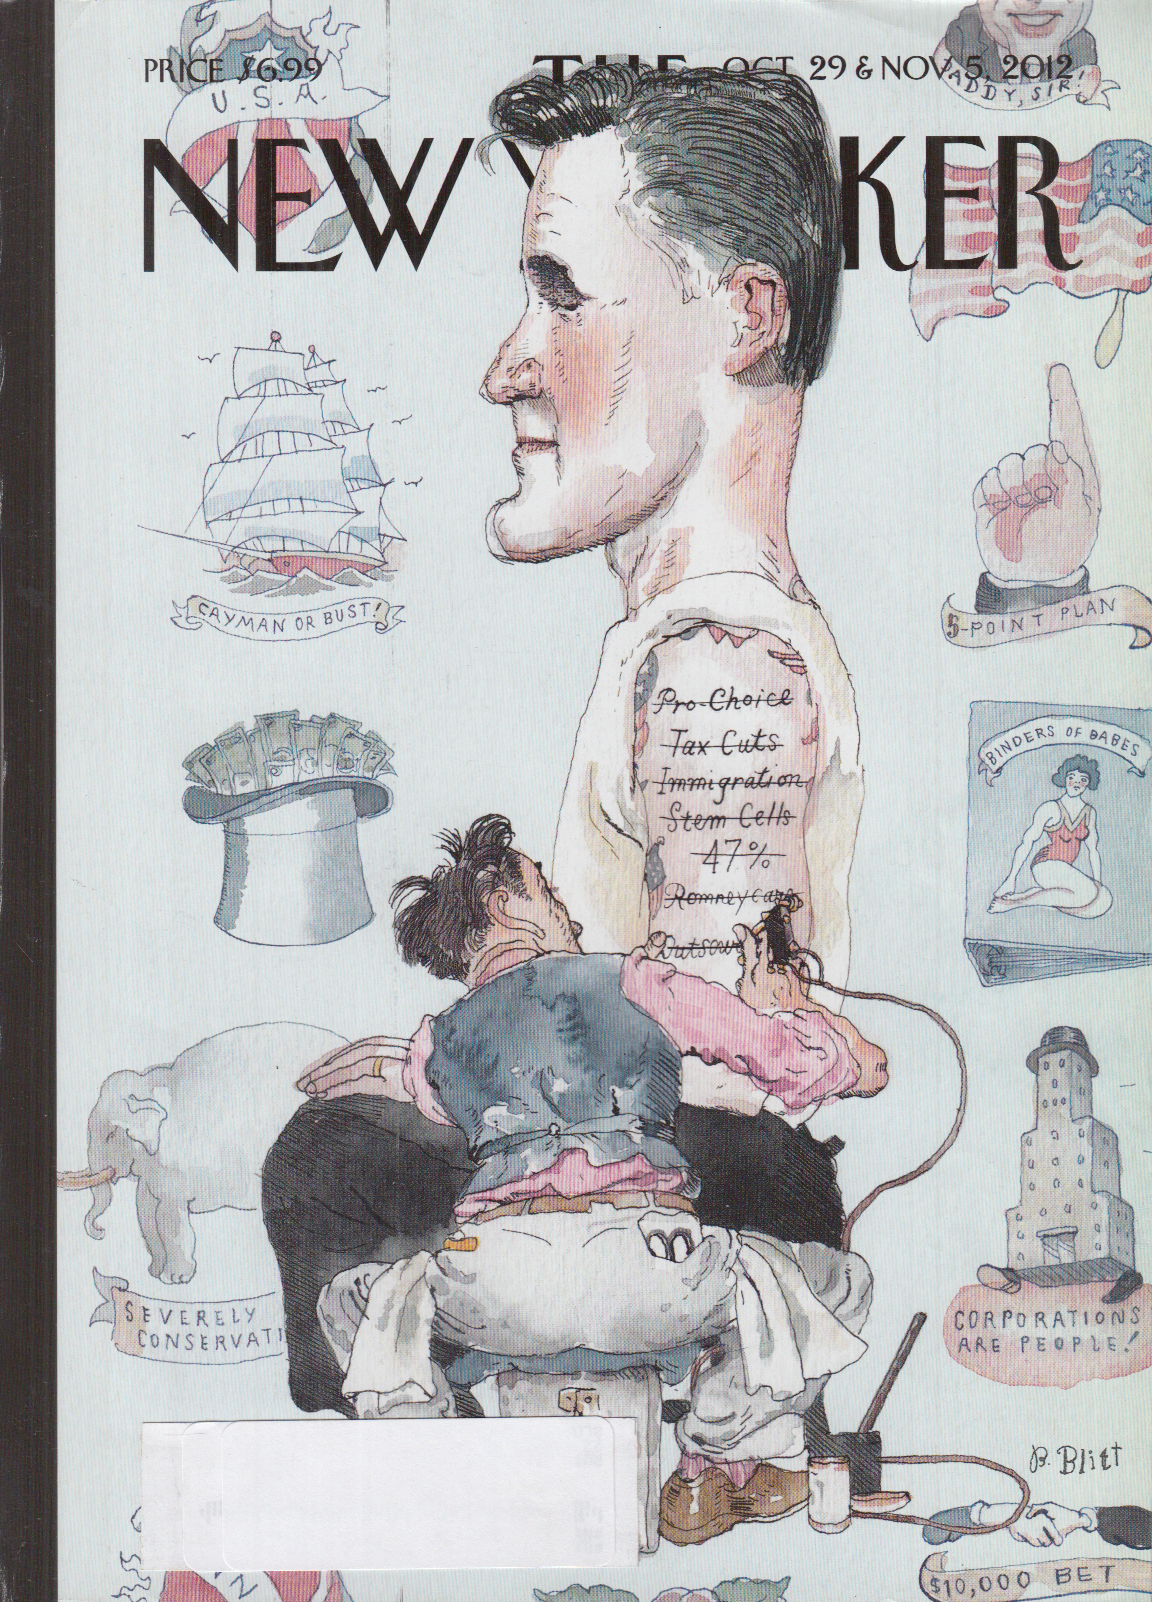 New Yorker cover Blitt 10/29 2012 Romney gets tattooed promises inked out